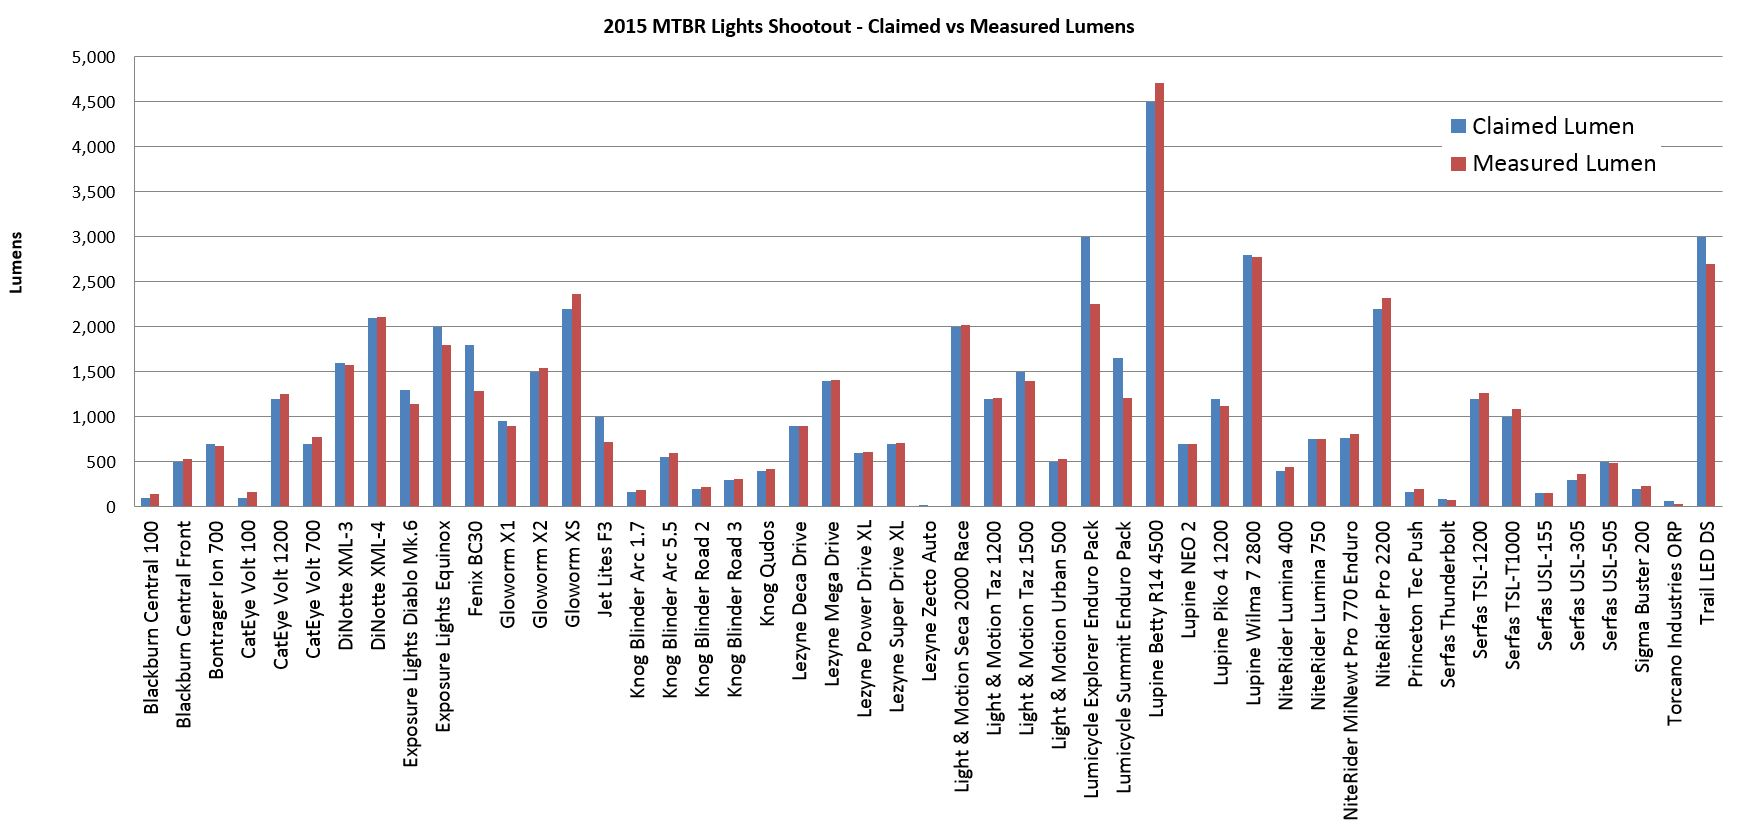 2015 Lights Shootout Claimed vs Measured Lumens